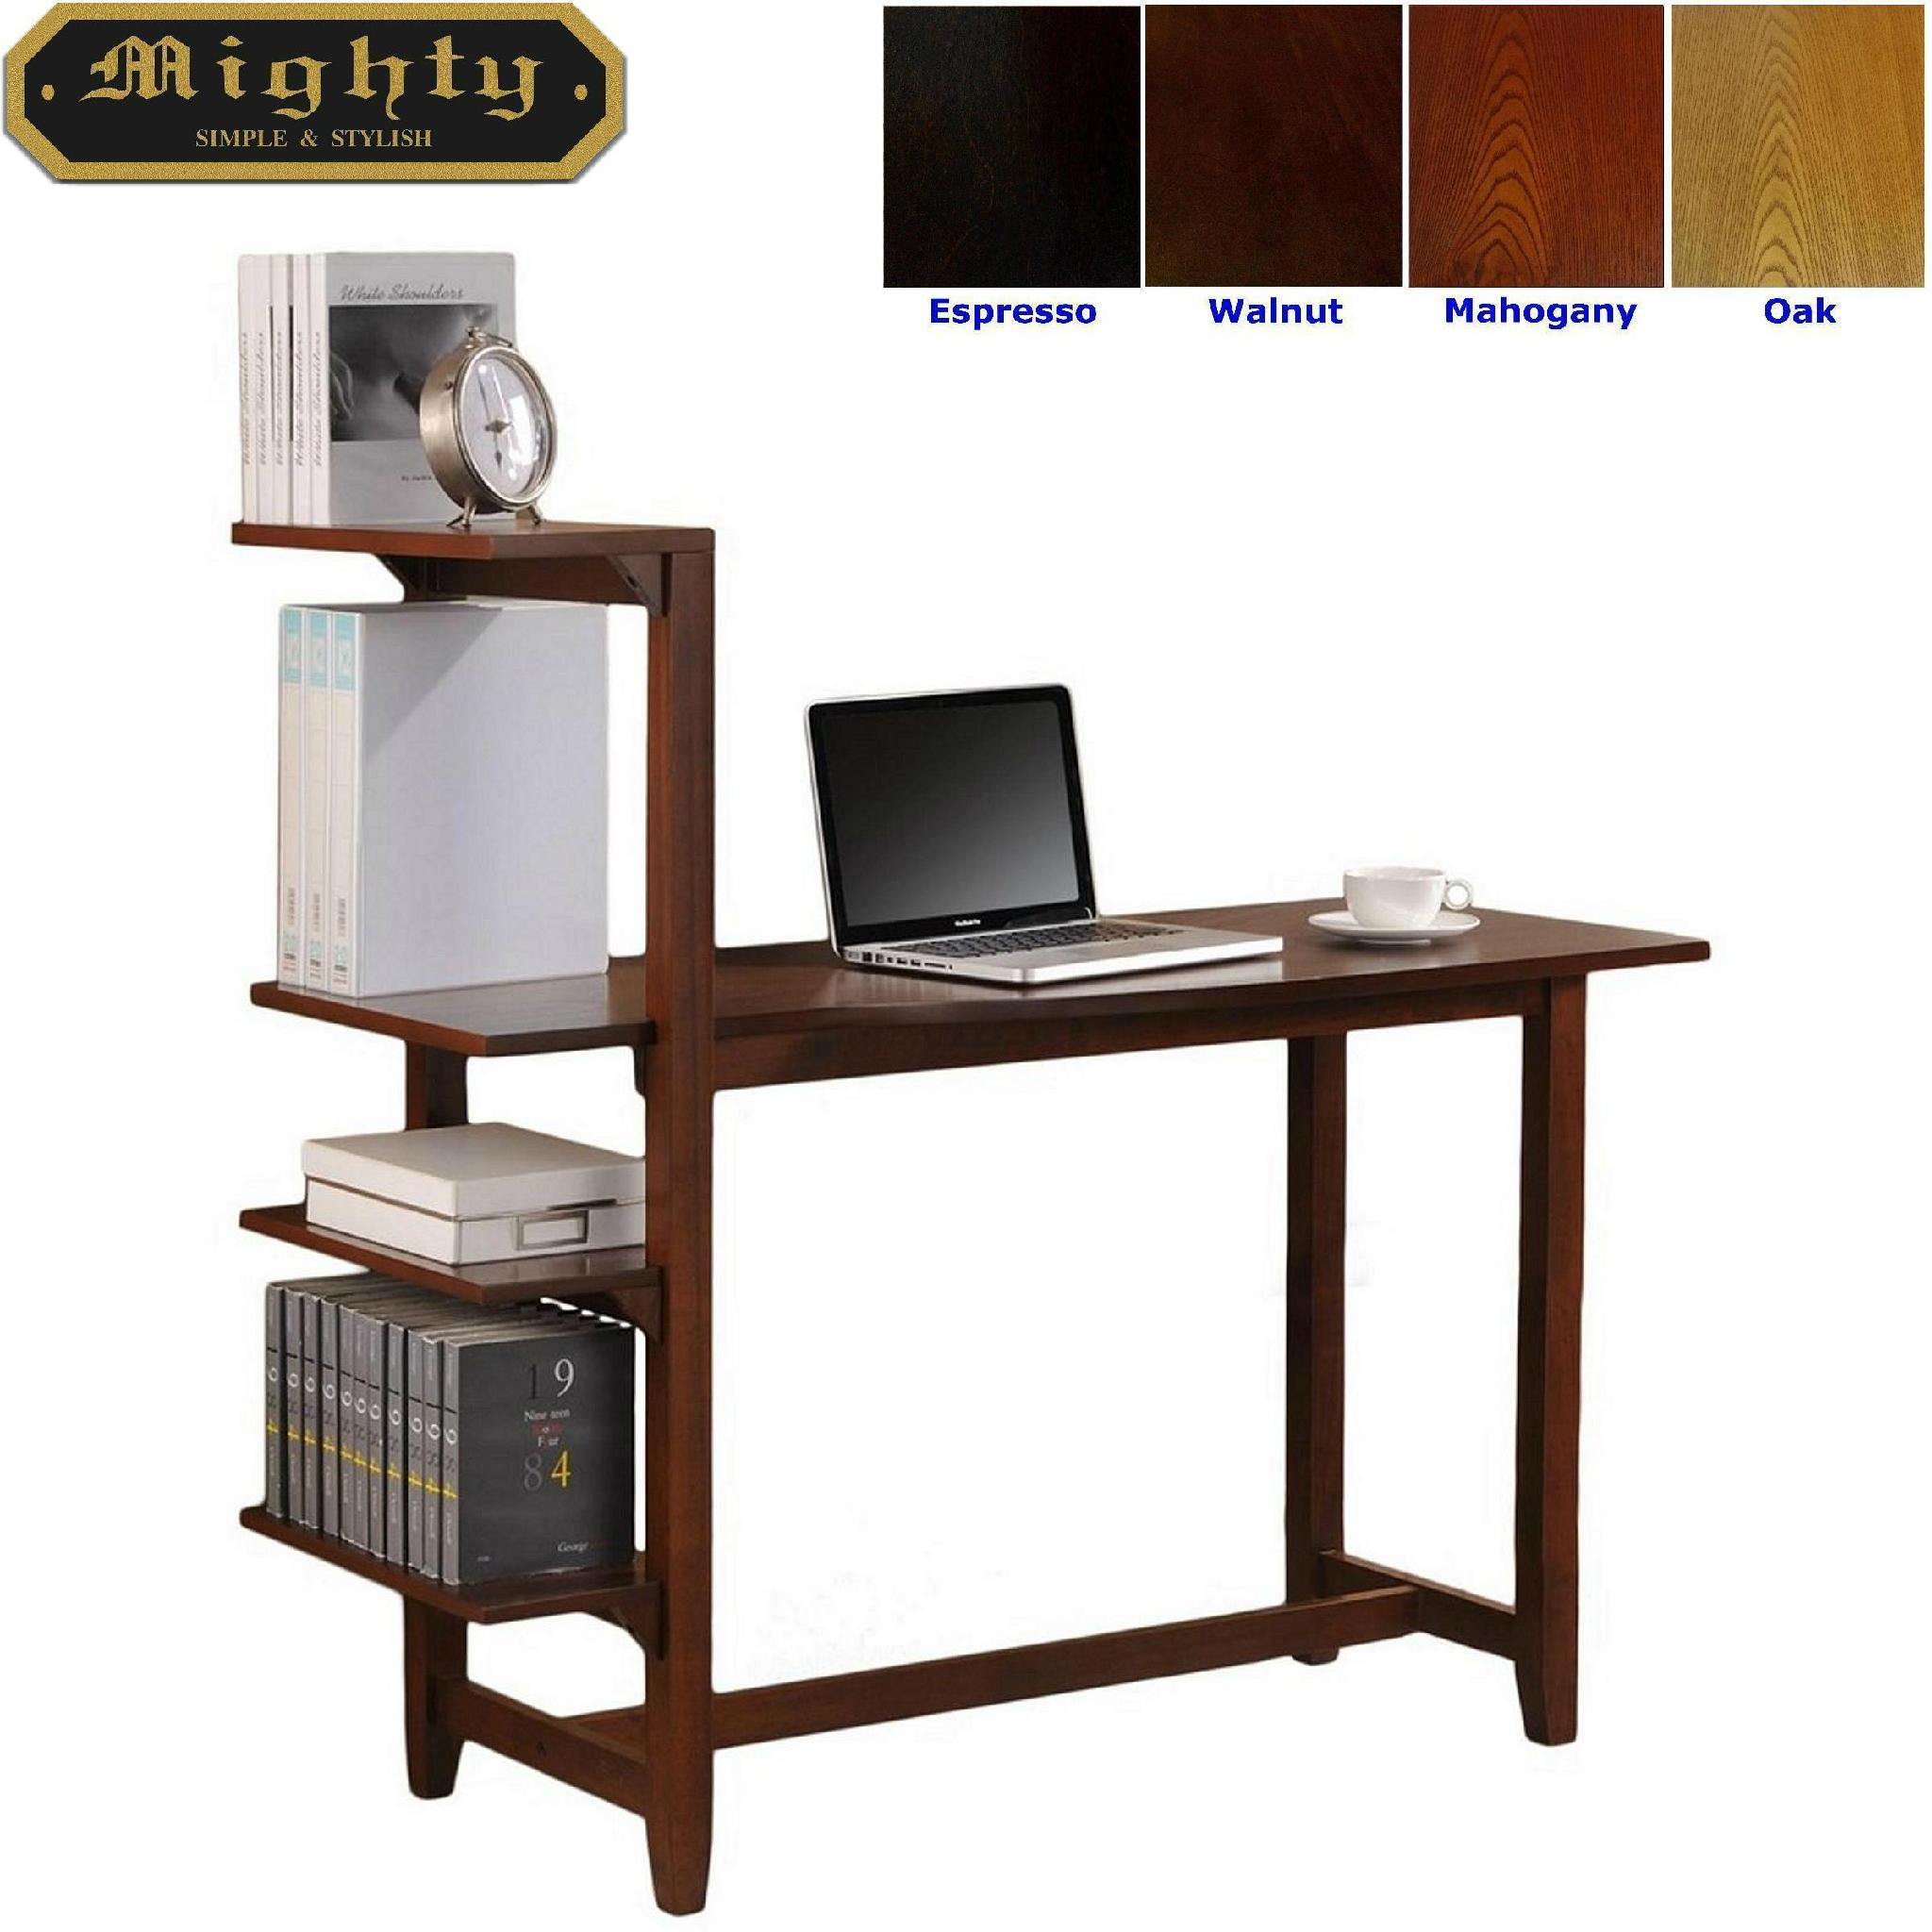 4 tier bookshelf small writing desk with shelves taiwan. Black Bedroom Furniture Sets. Home Design Ideas